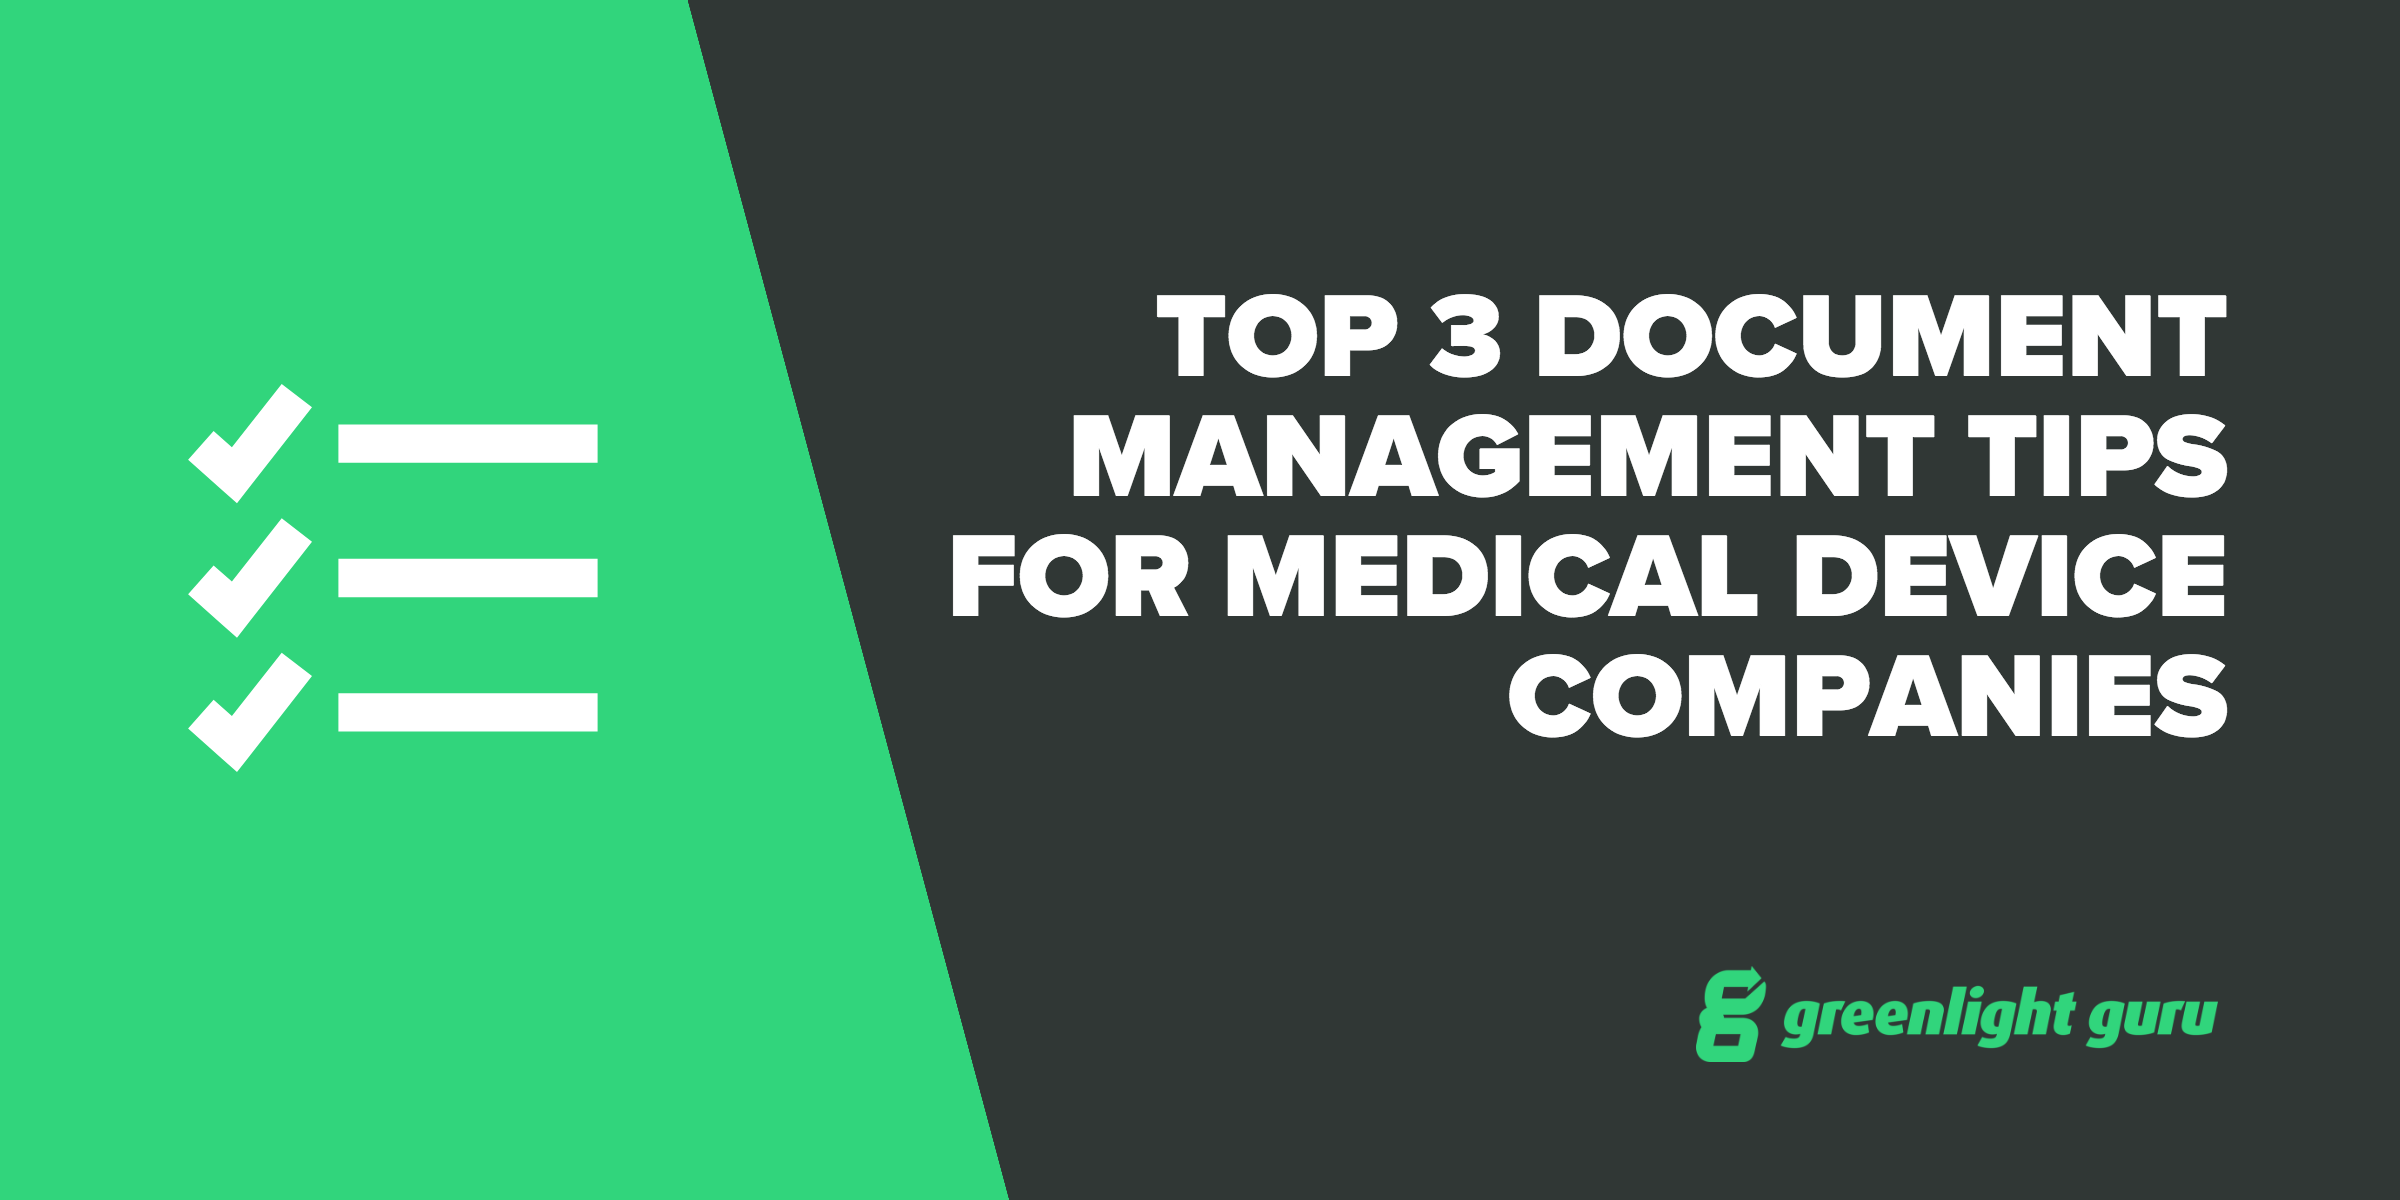 Top 3 document management tips for medical device companies top 3 tips fandeluxe Gallery